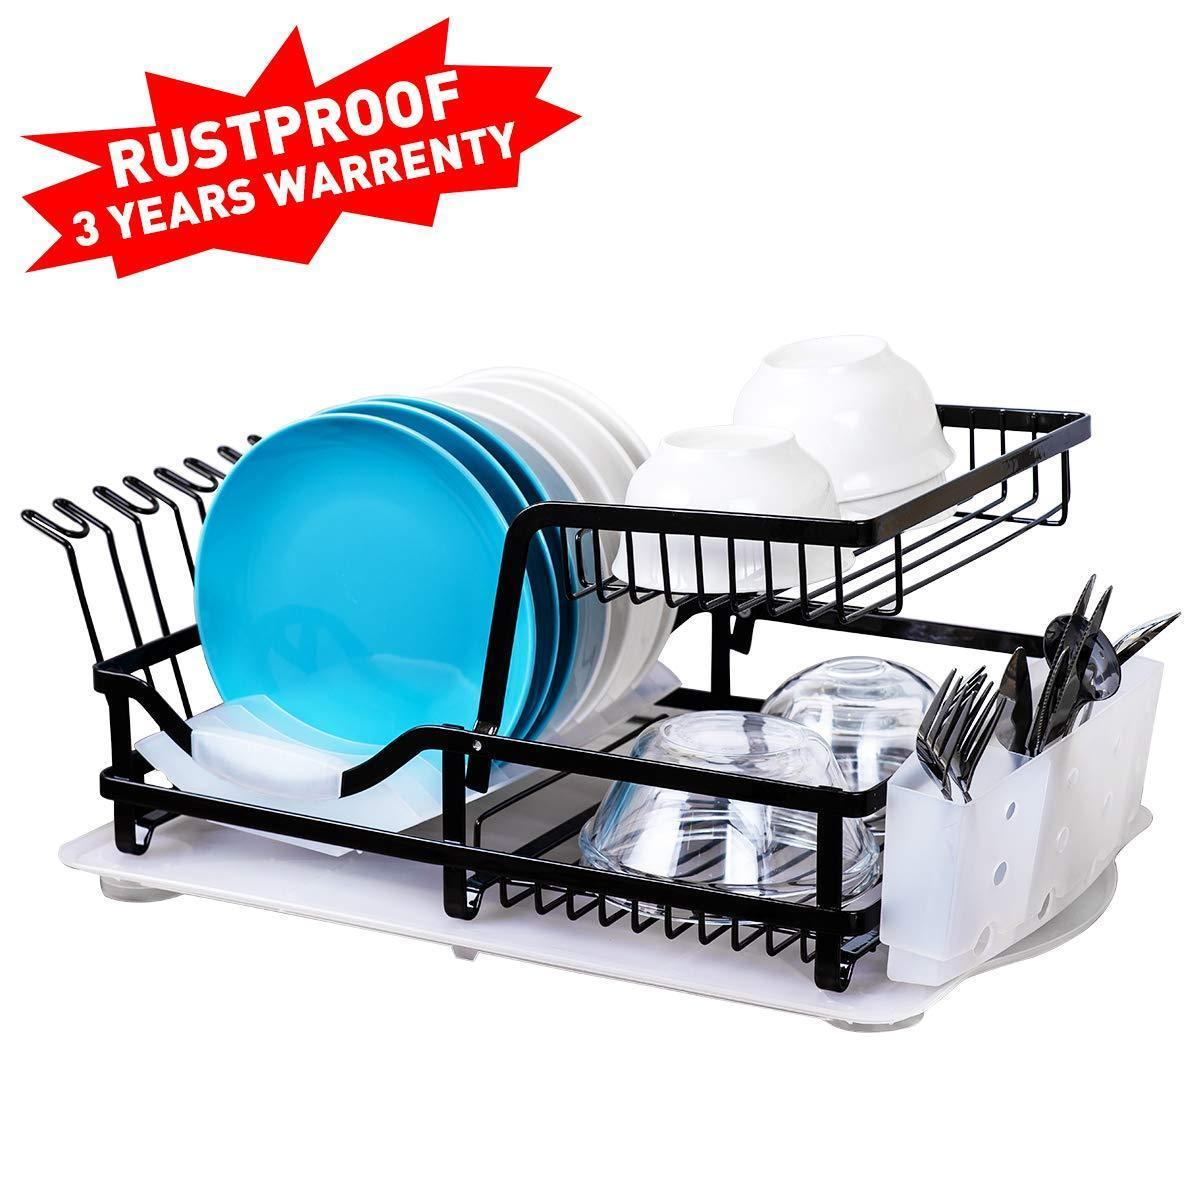 2-Tier Dish Rack, Dish Drying Rack with Utensil Holder and Drain Board Wine Glass Holder Easy-Storage Rustproof Kitchen Counter Dish Drainer Rack Organizer, Iron